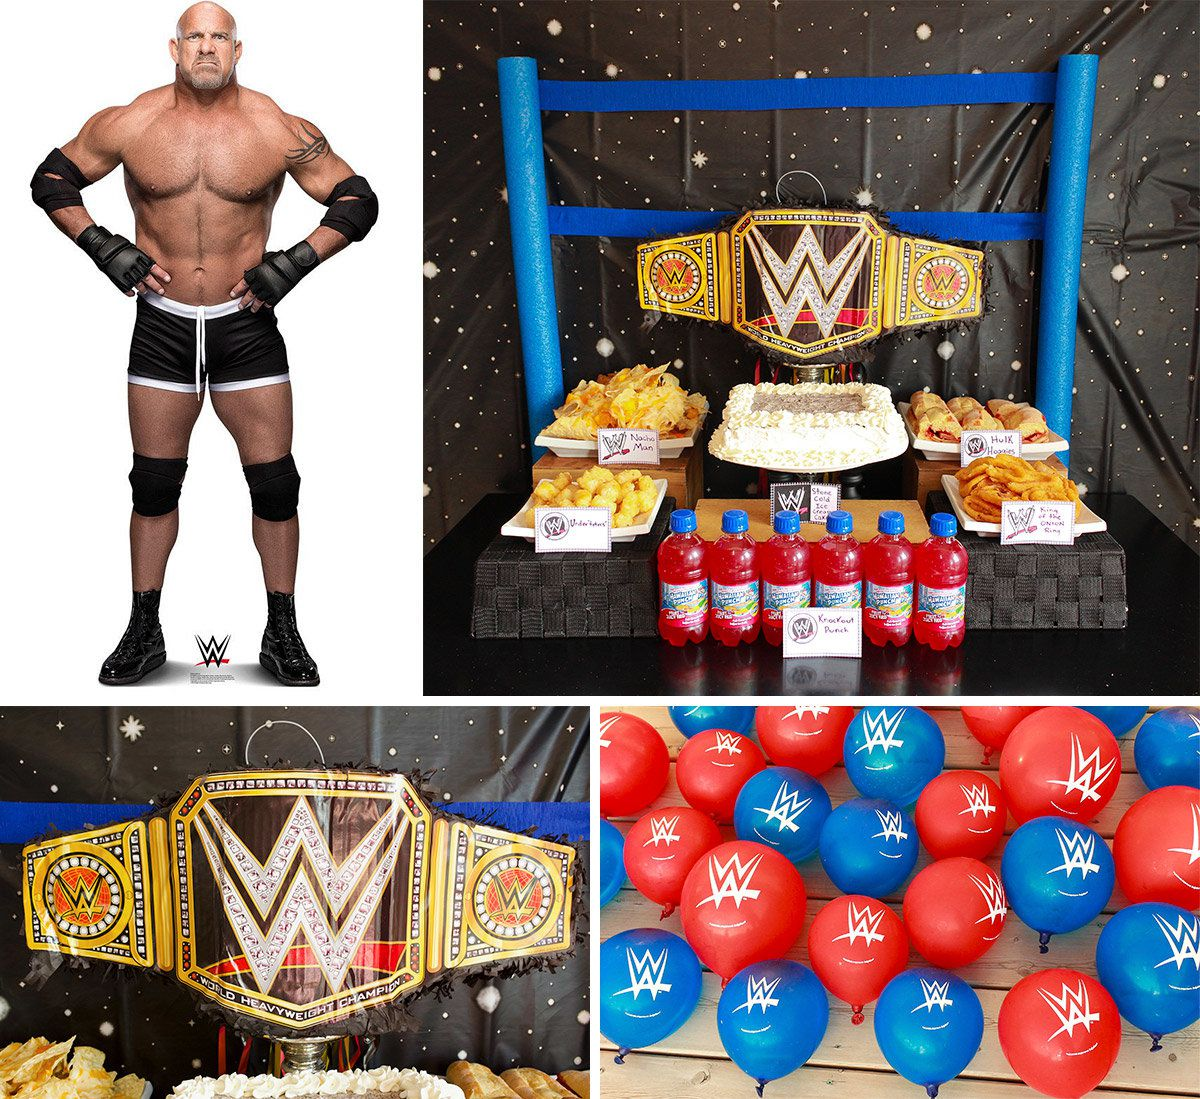 Wwe Wrestling Party Ideas Birthday In A Box